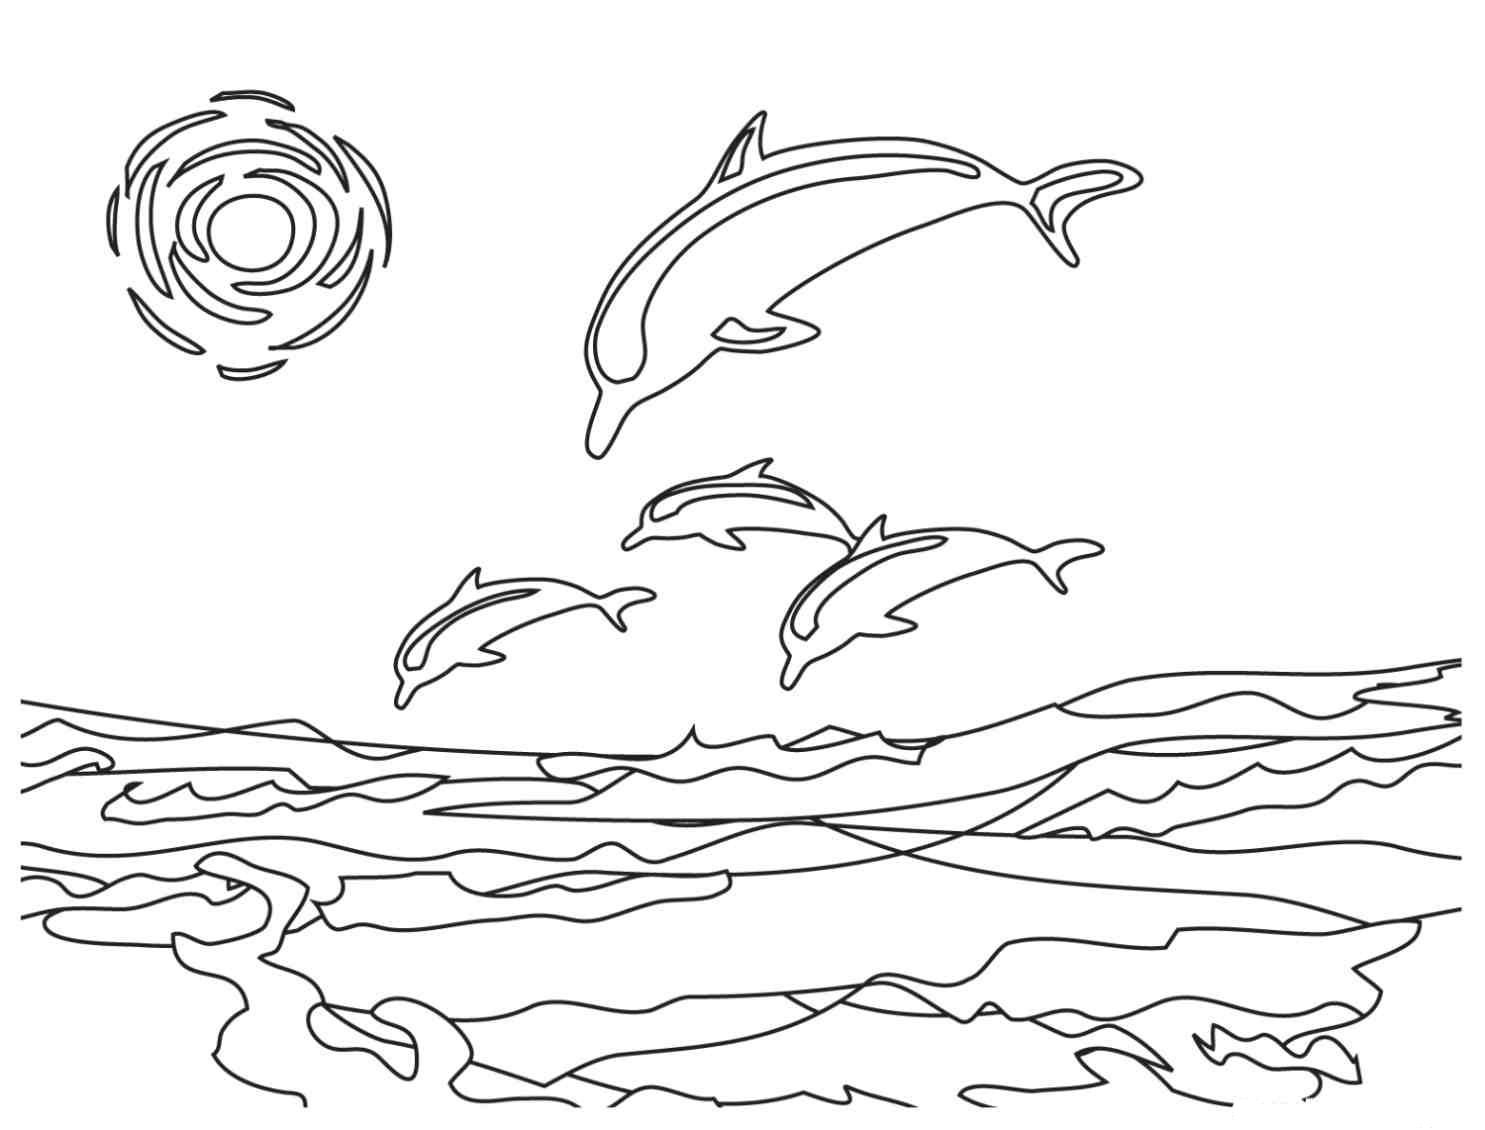 dolphin colouring dolphin template animal templates free premium templates dolphin colouring 1 1